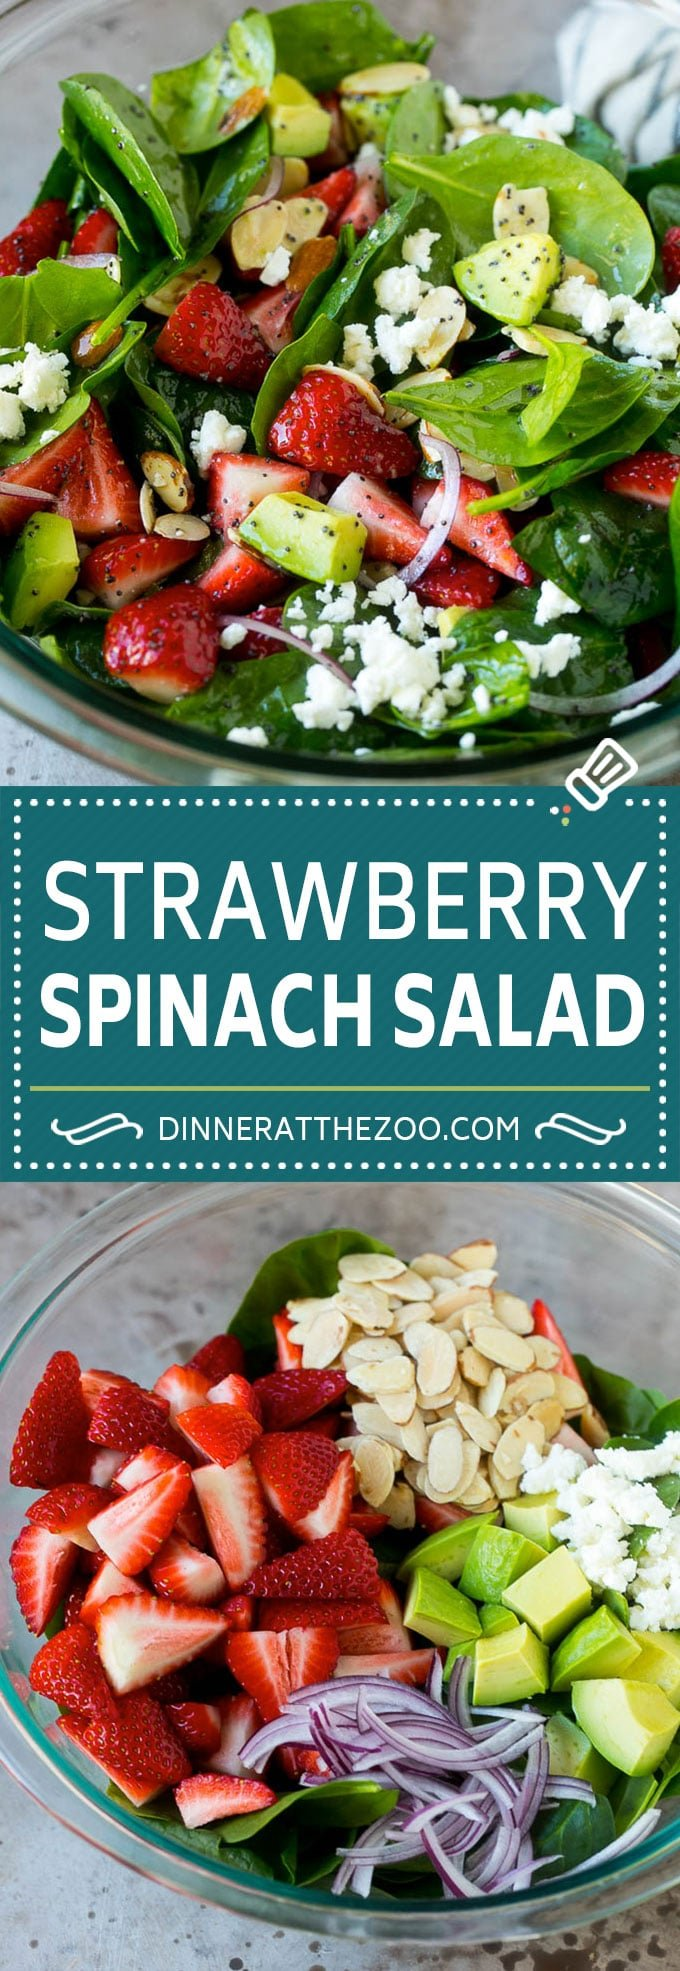 Strawberry Spinach Salad Recipe | Strawberry Salad | Spinach Salad #spinach #salad #strawberries #avocado #dinneratthezoo